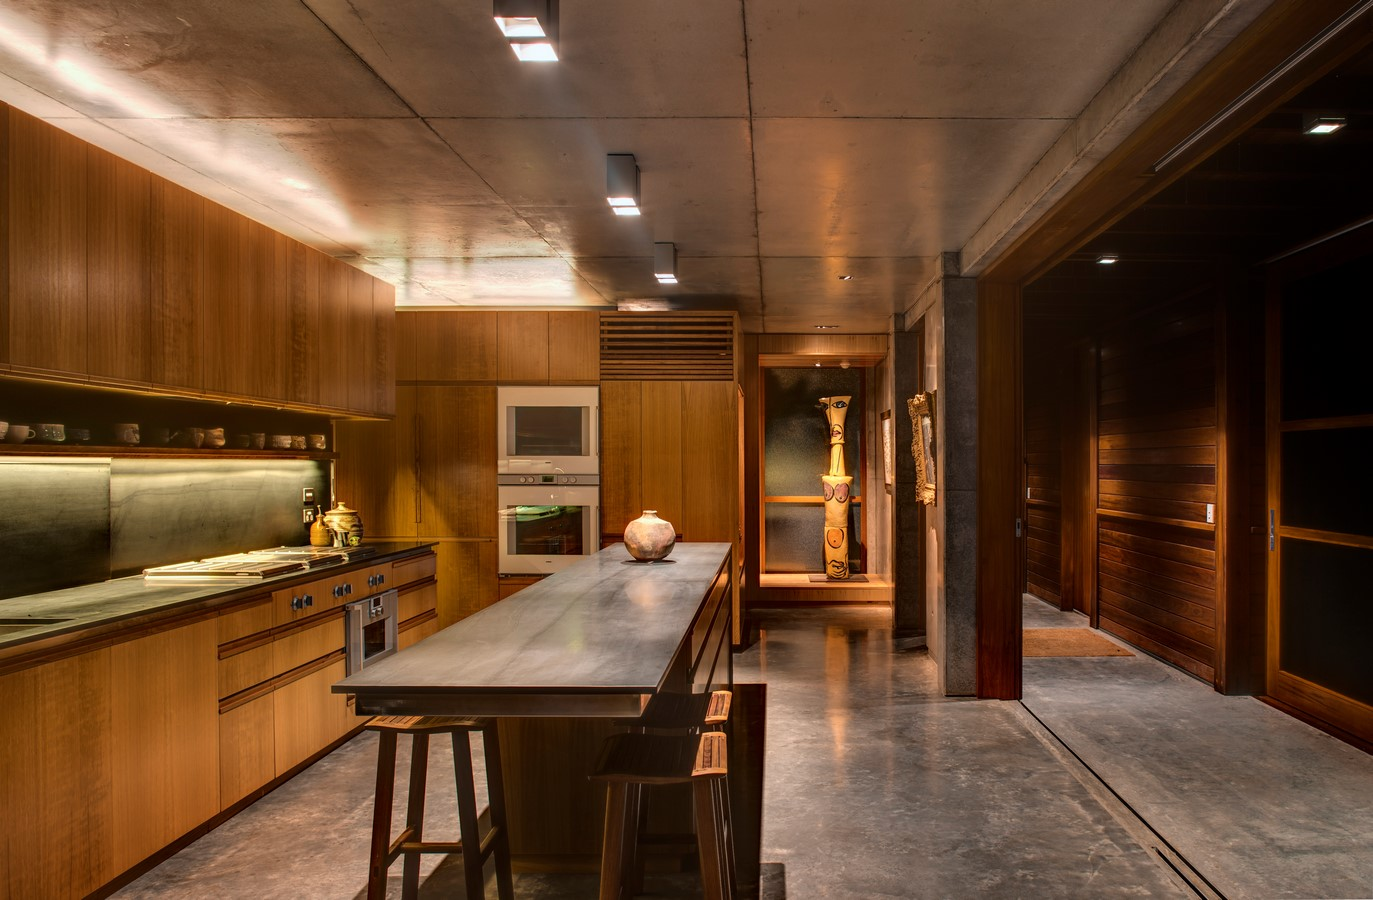 South Coast House by Indyk Architects - Sheet3